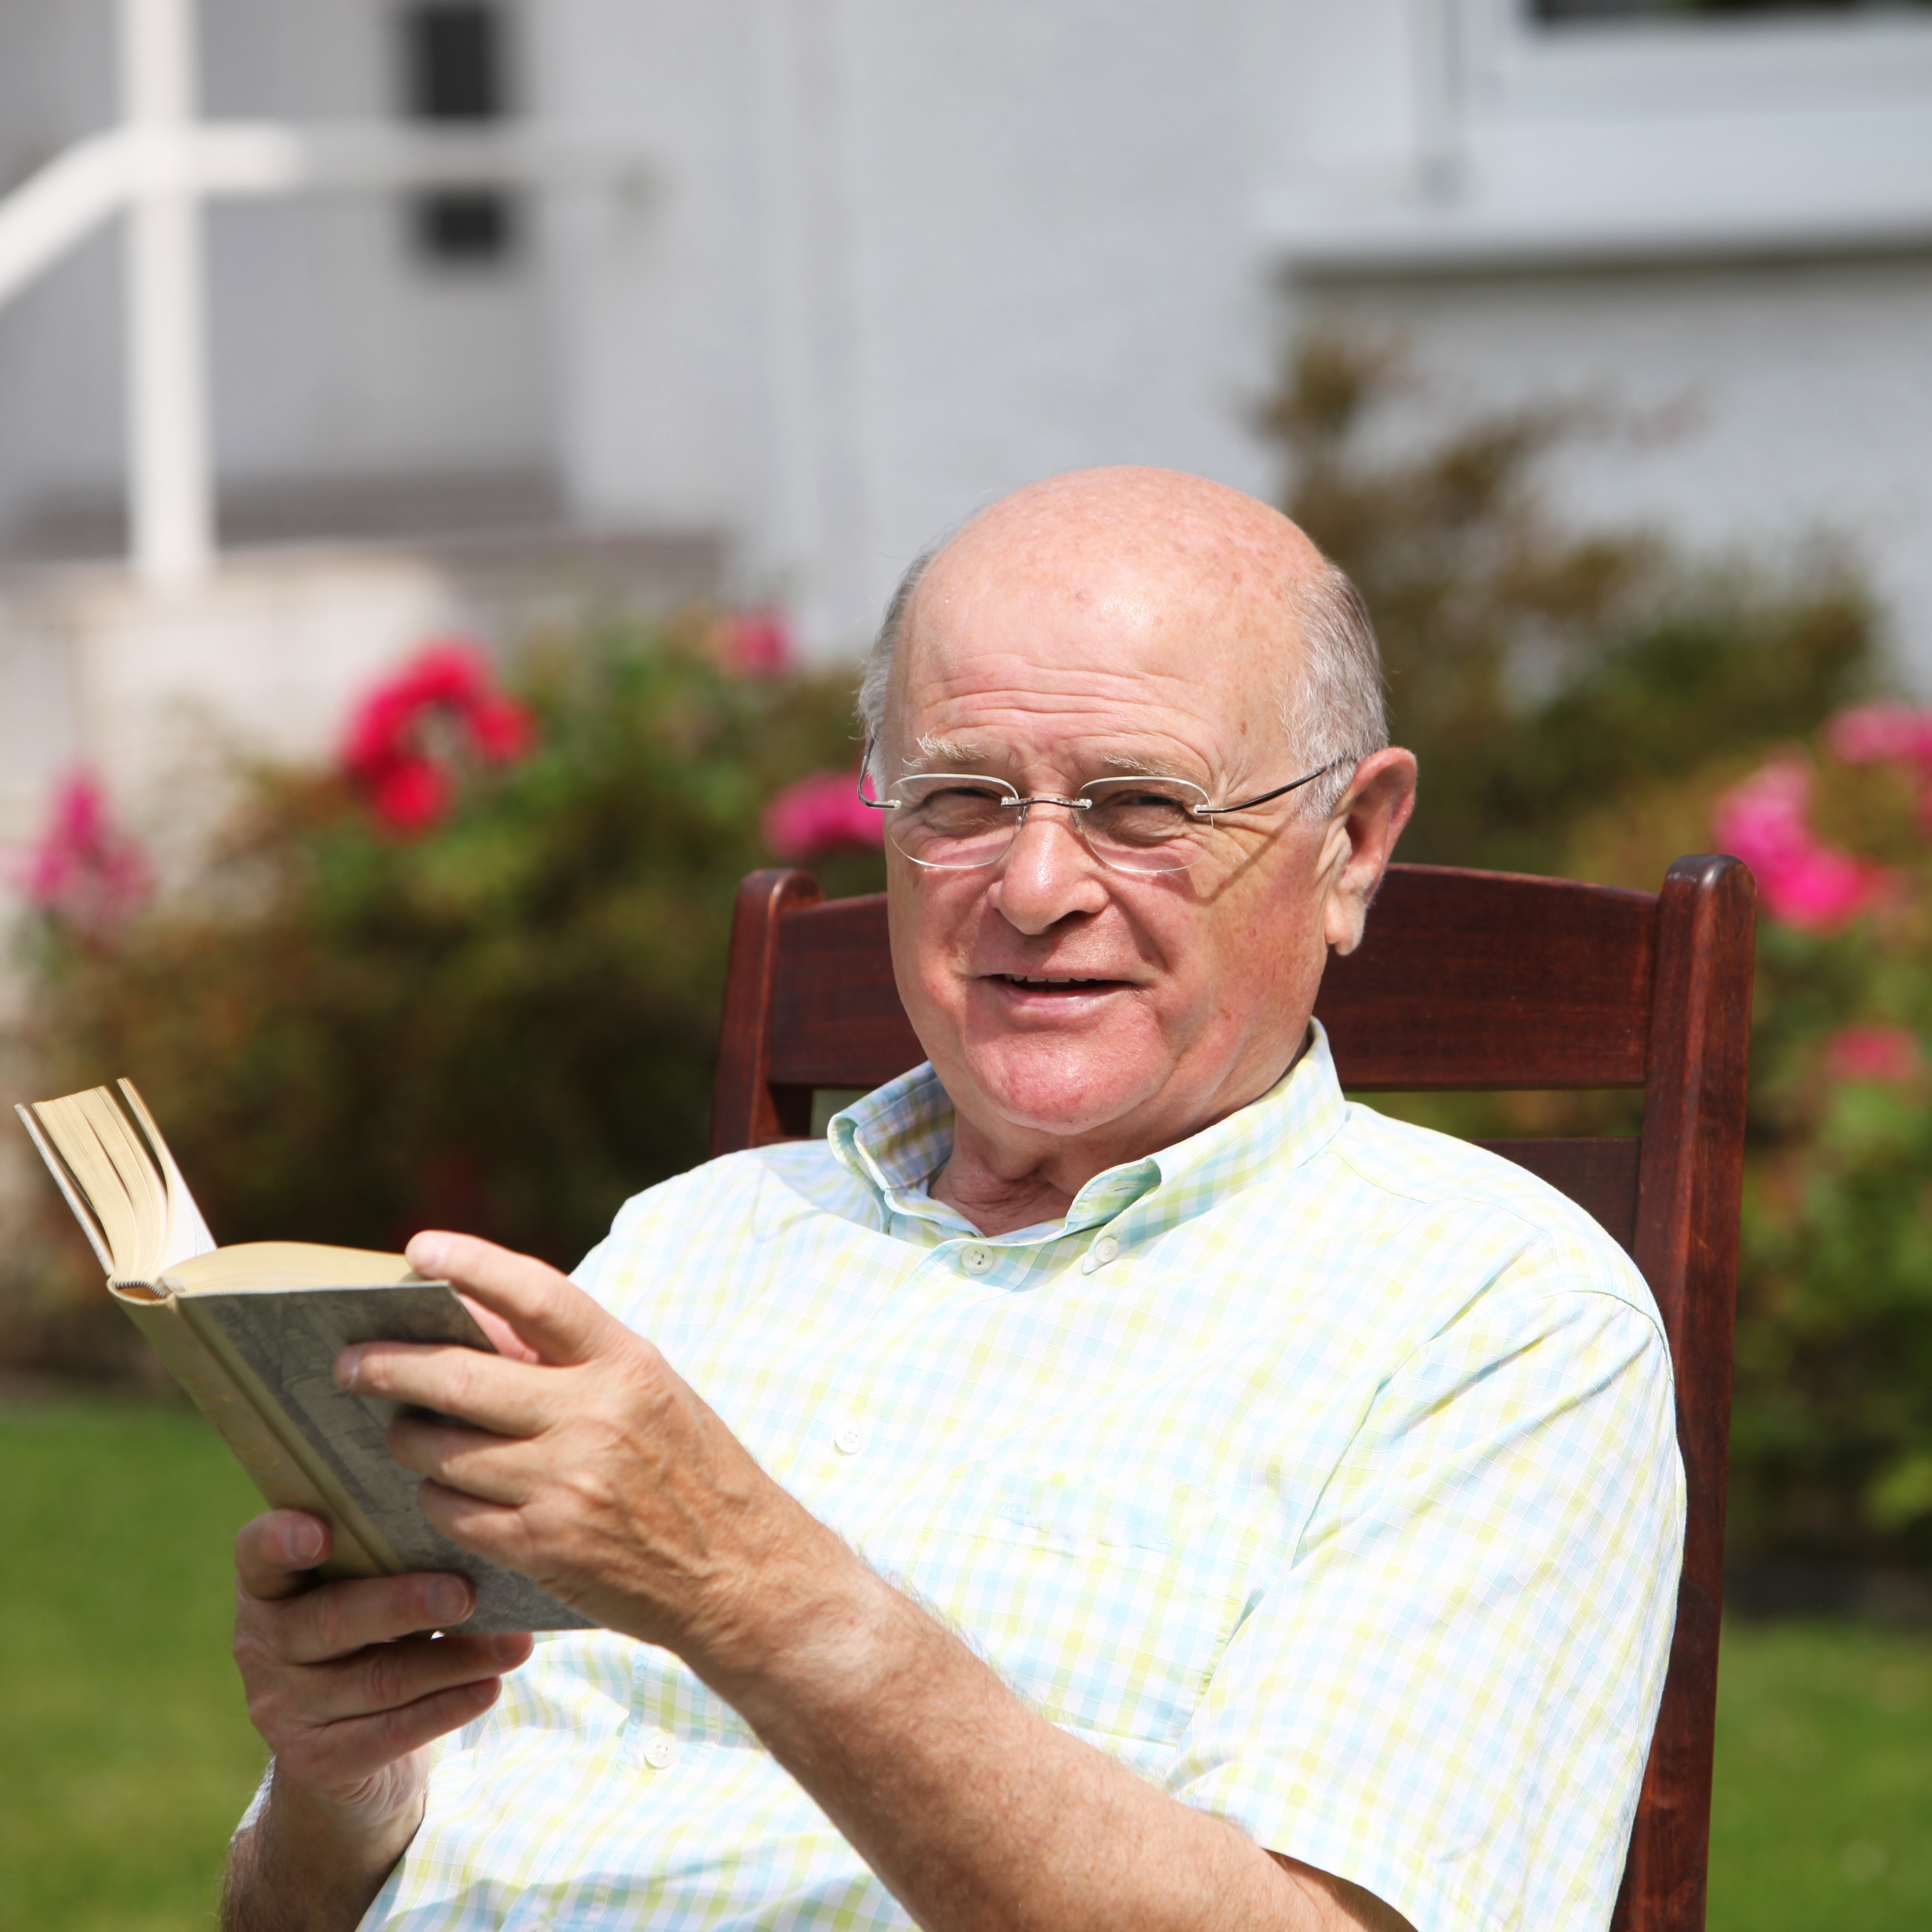 Happy pensioner relaxing with a book Happy pensioner relaxing with a book sitting in his garden enjo